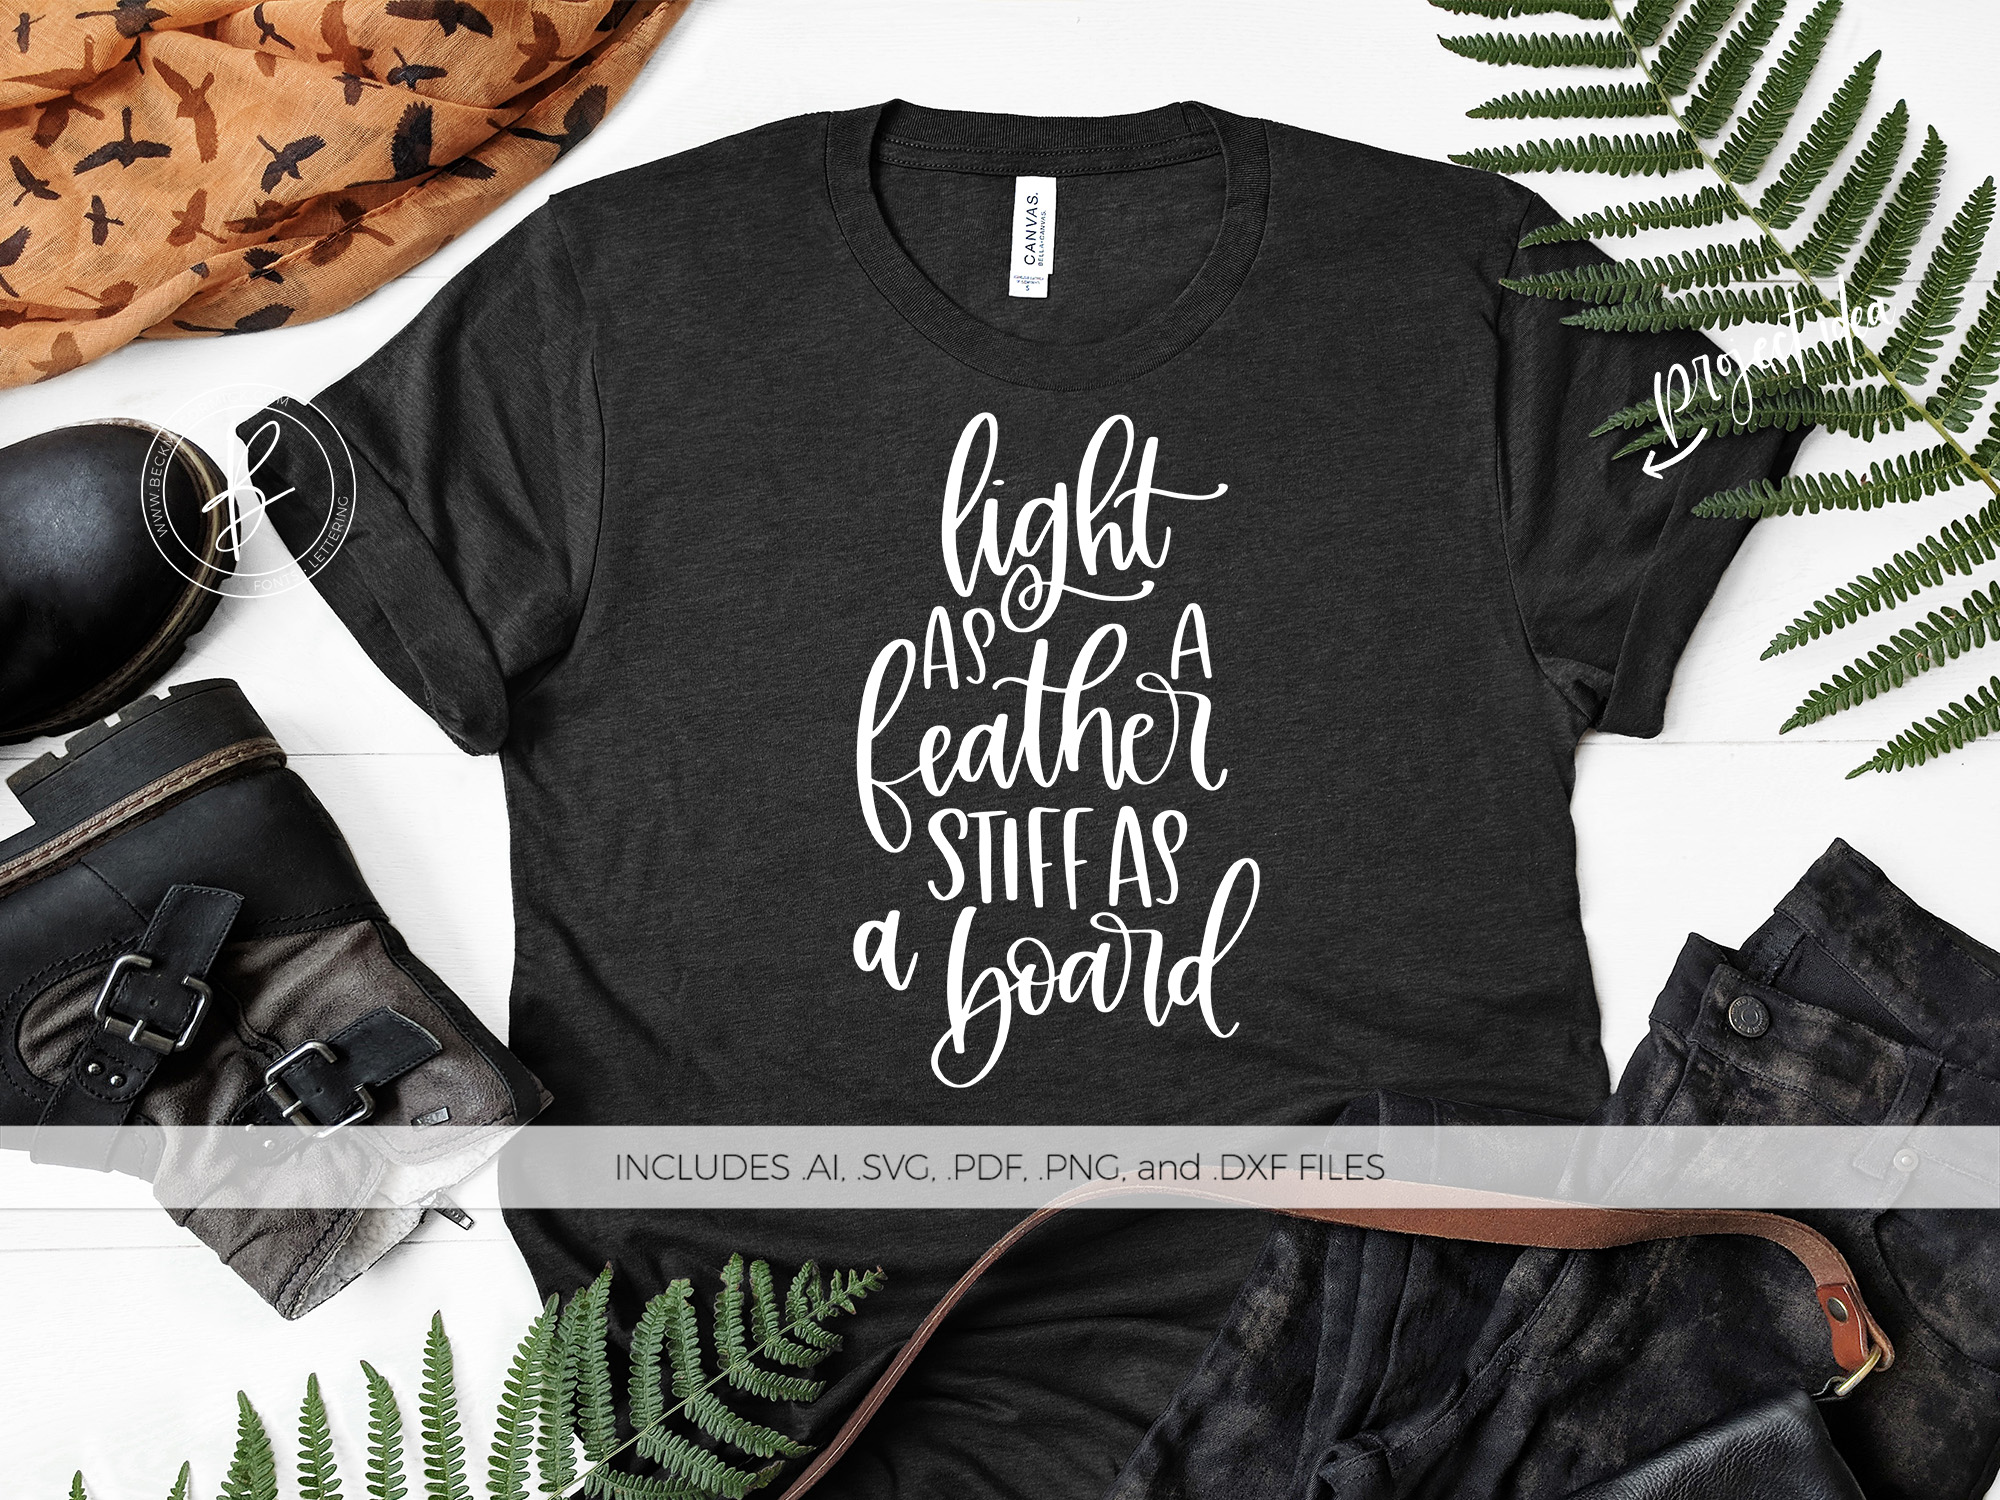 Download Free Light As A Feather Stiff As A Board Graphic By Beckmccormick for Cricut Explore, Silhouette and other cutting machines.